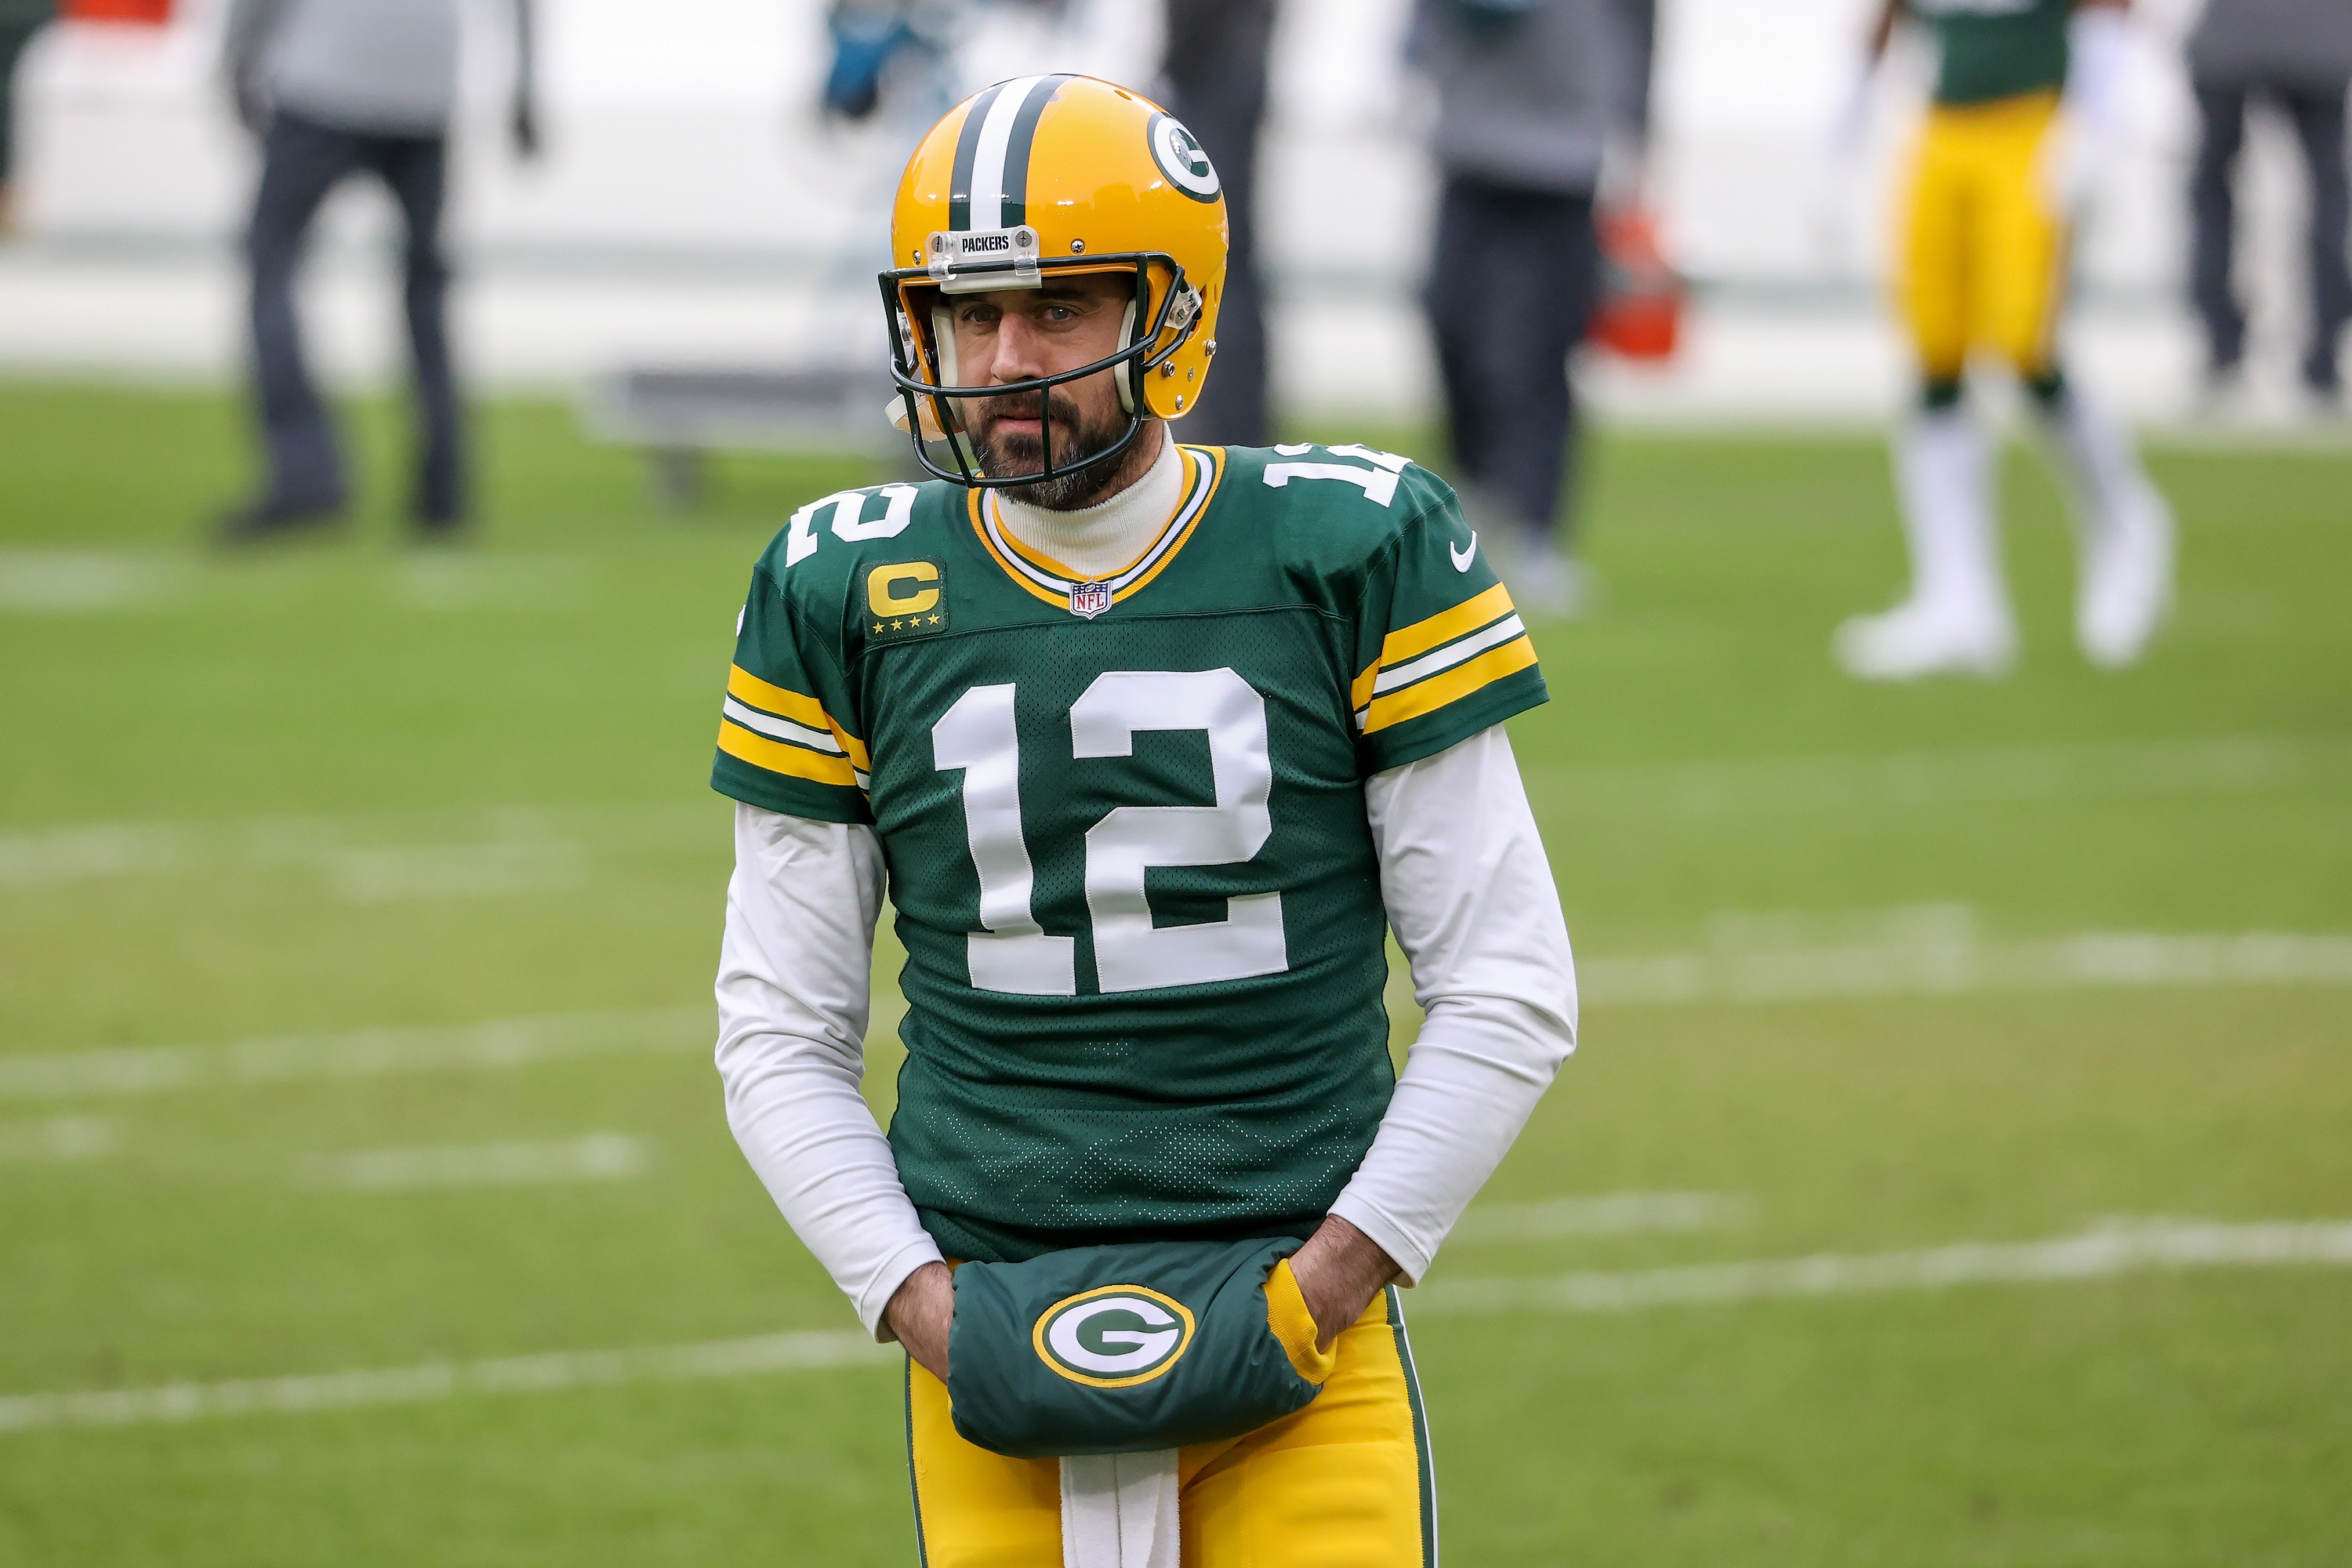 Aaron Rodgers looks on during the NFC Championship game